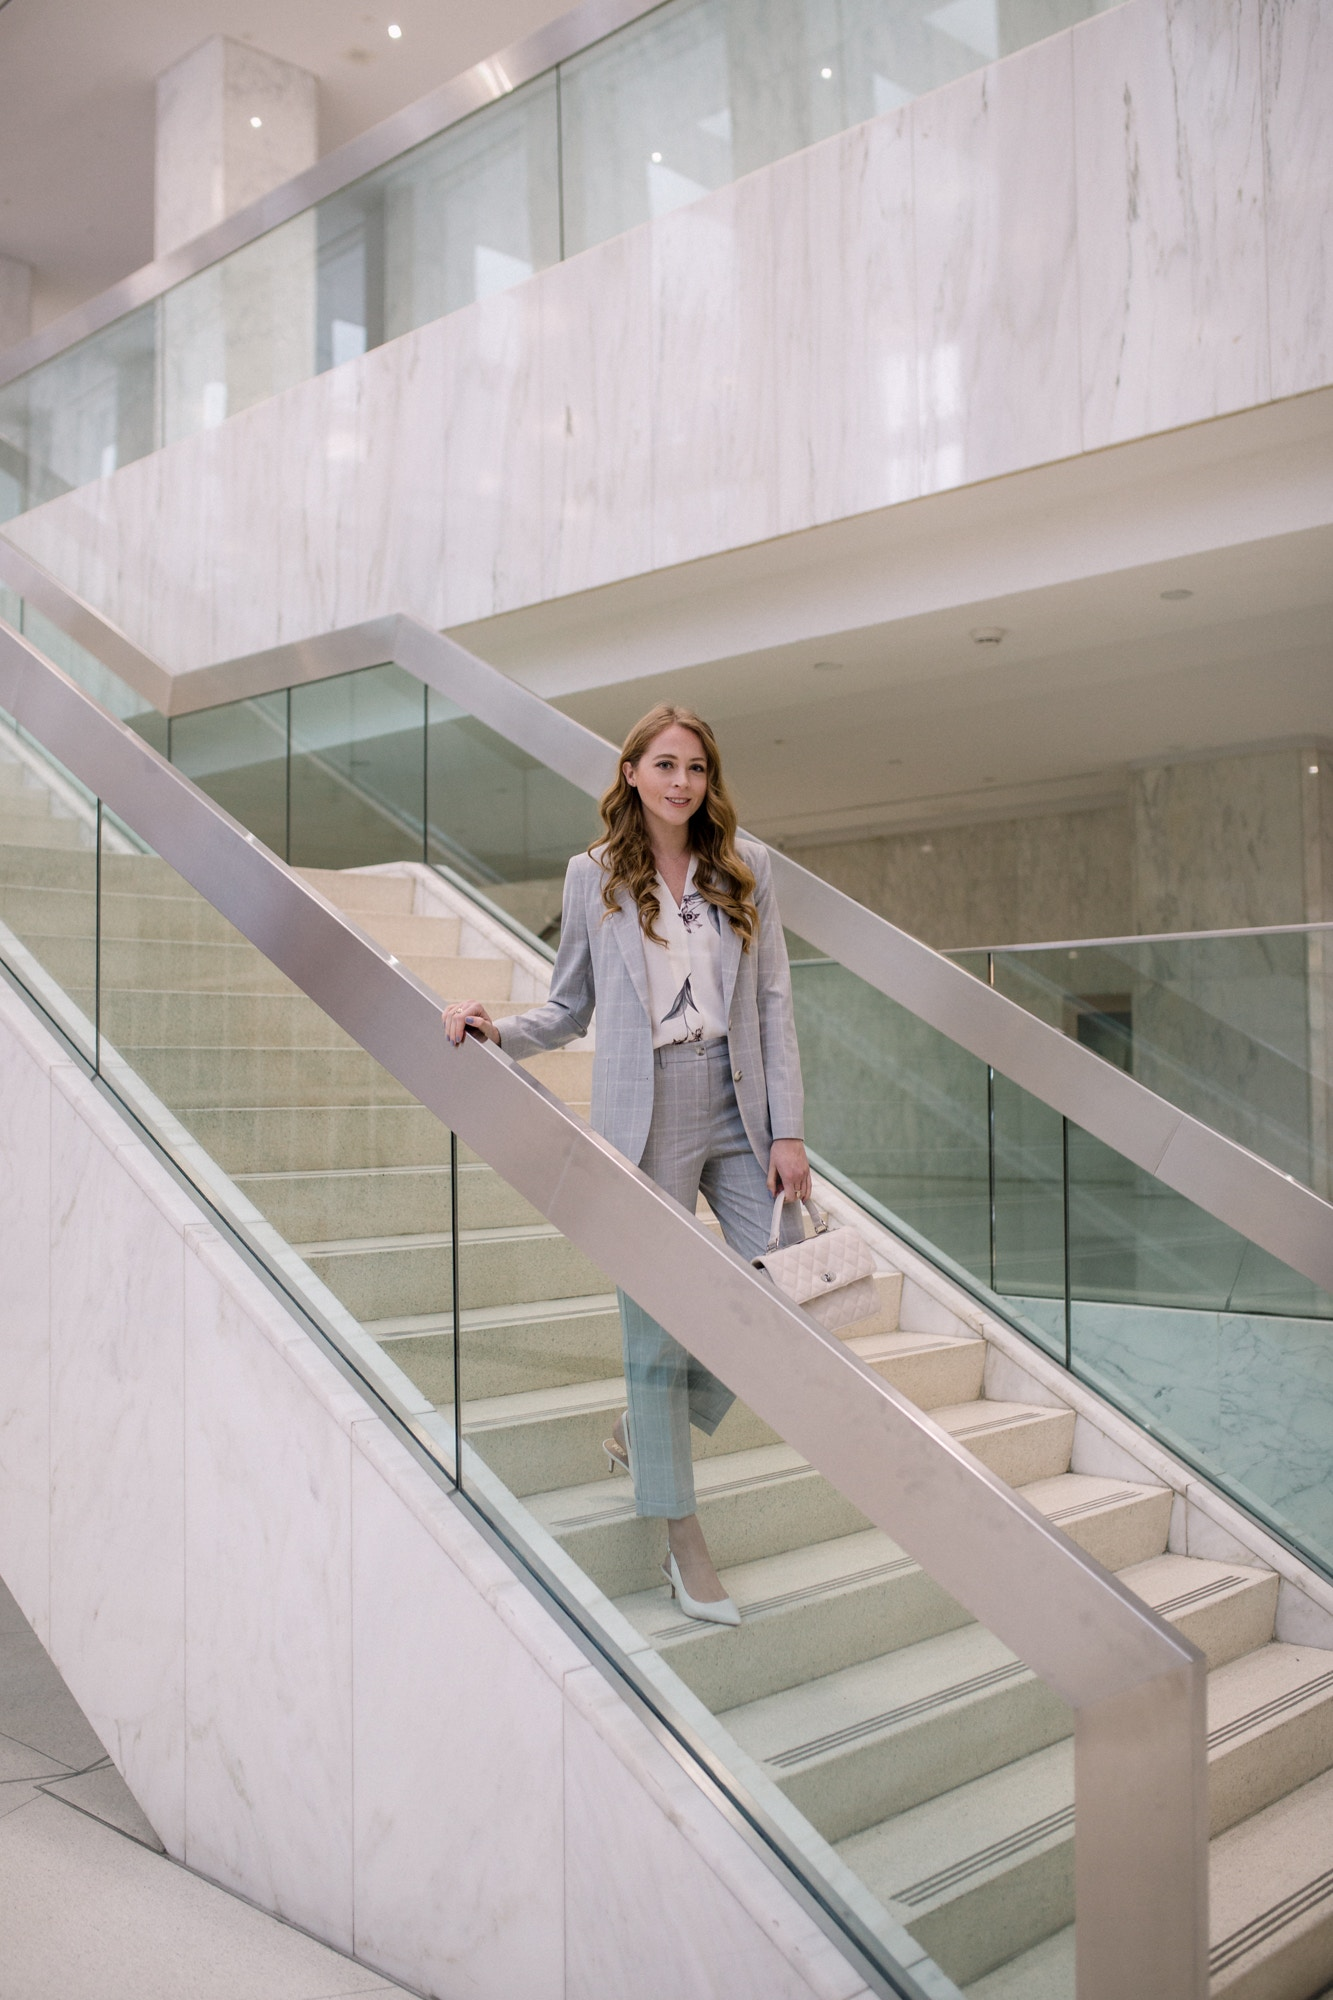 Chic grey suit for corporate work environment. Dressing for the office can be a challenge, but a sleek classic suit in a modern cut is easy to wear. This grey plaid suit from Le Chateau is easy to dress up or down.